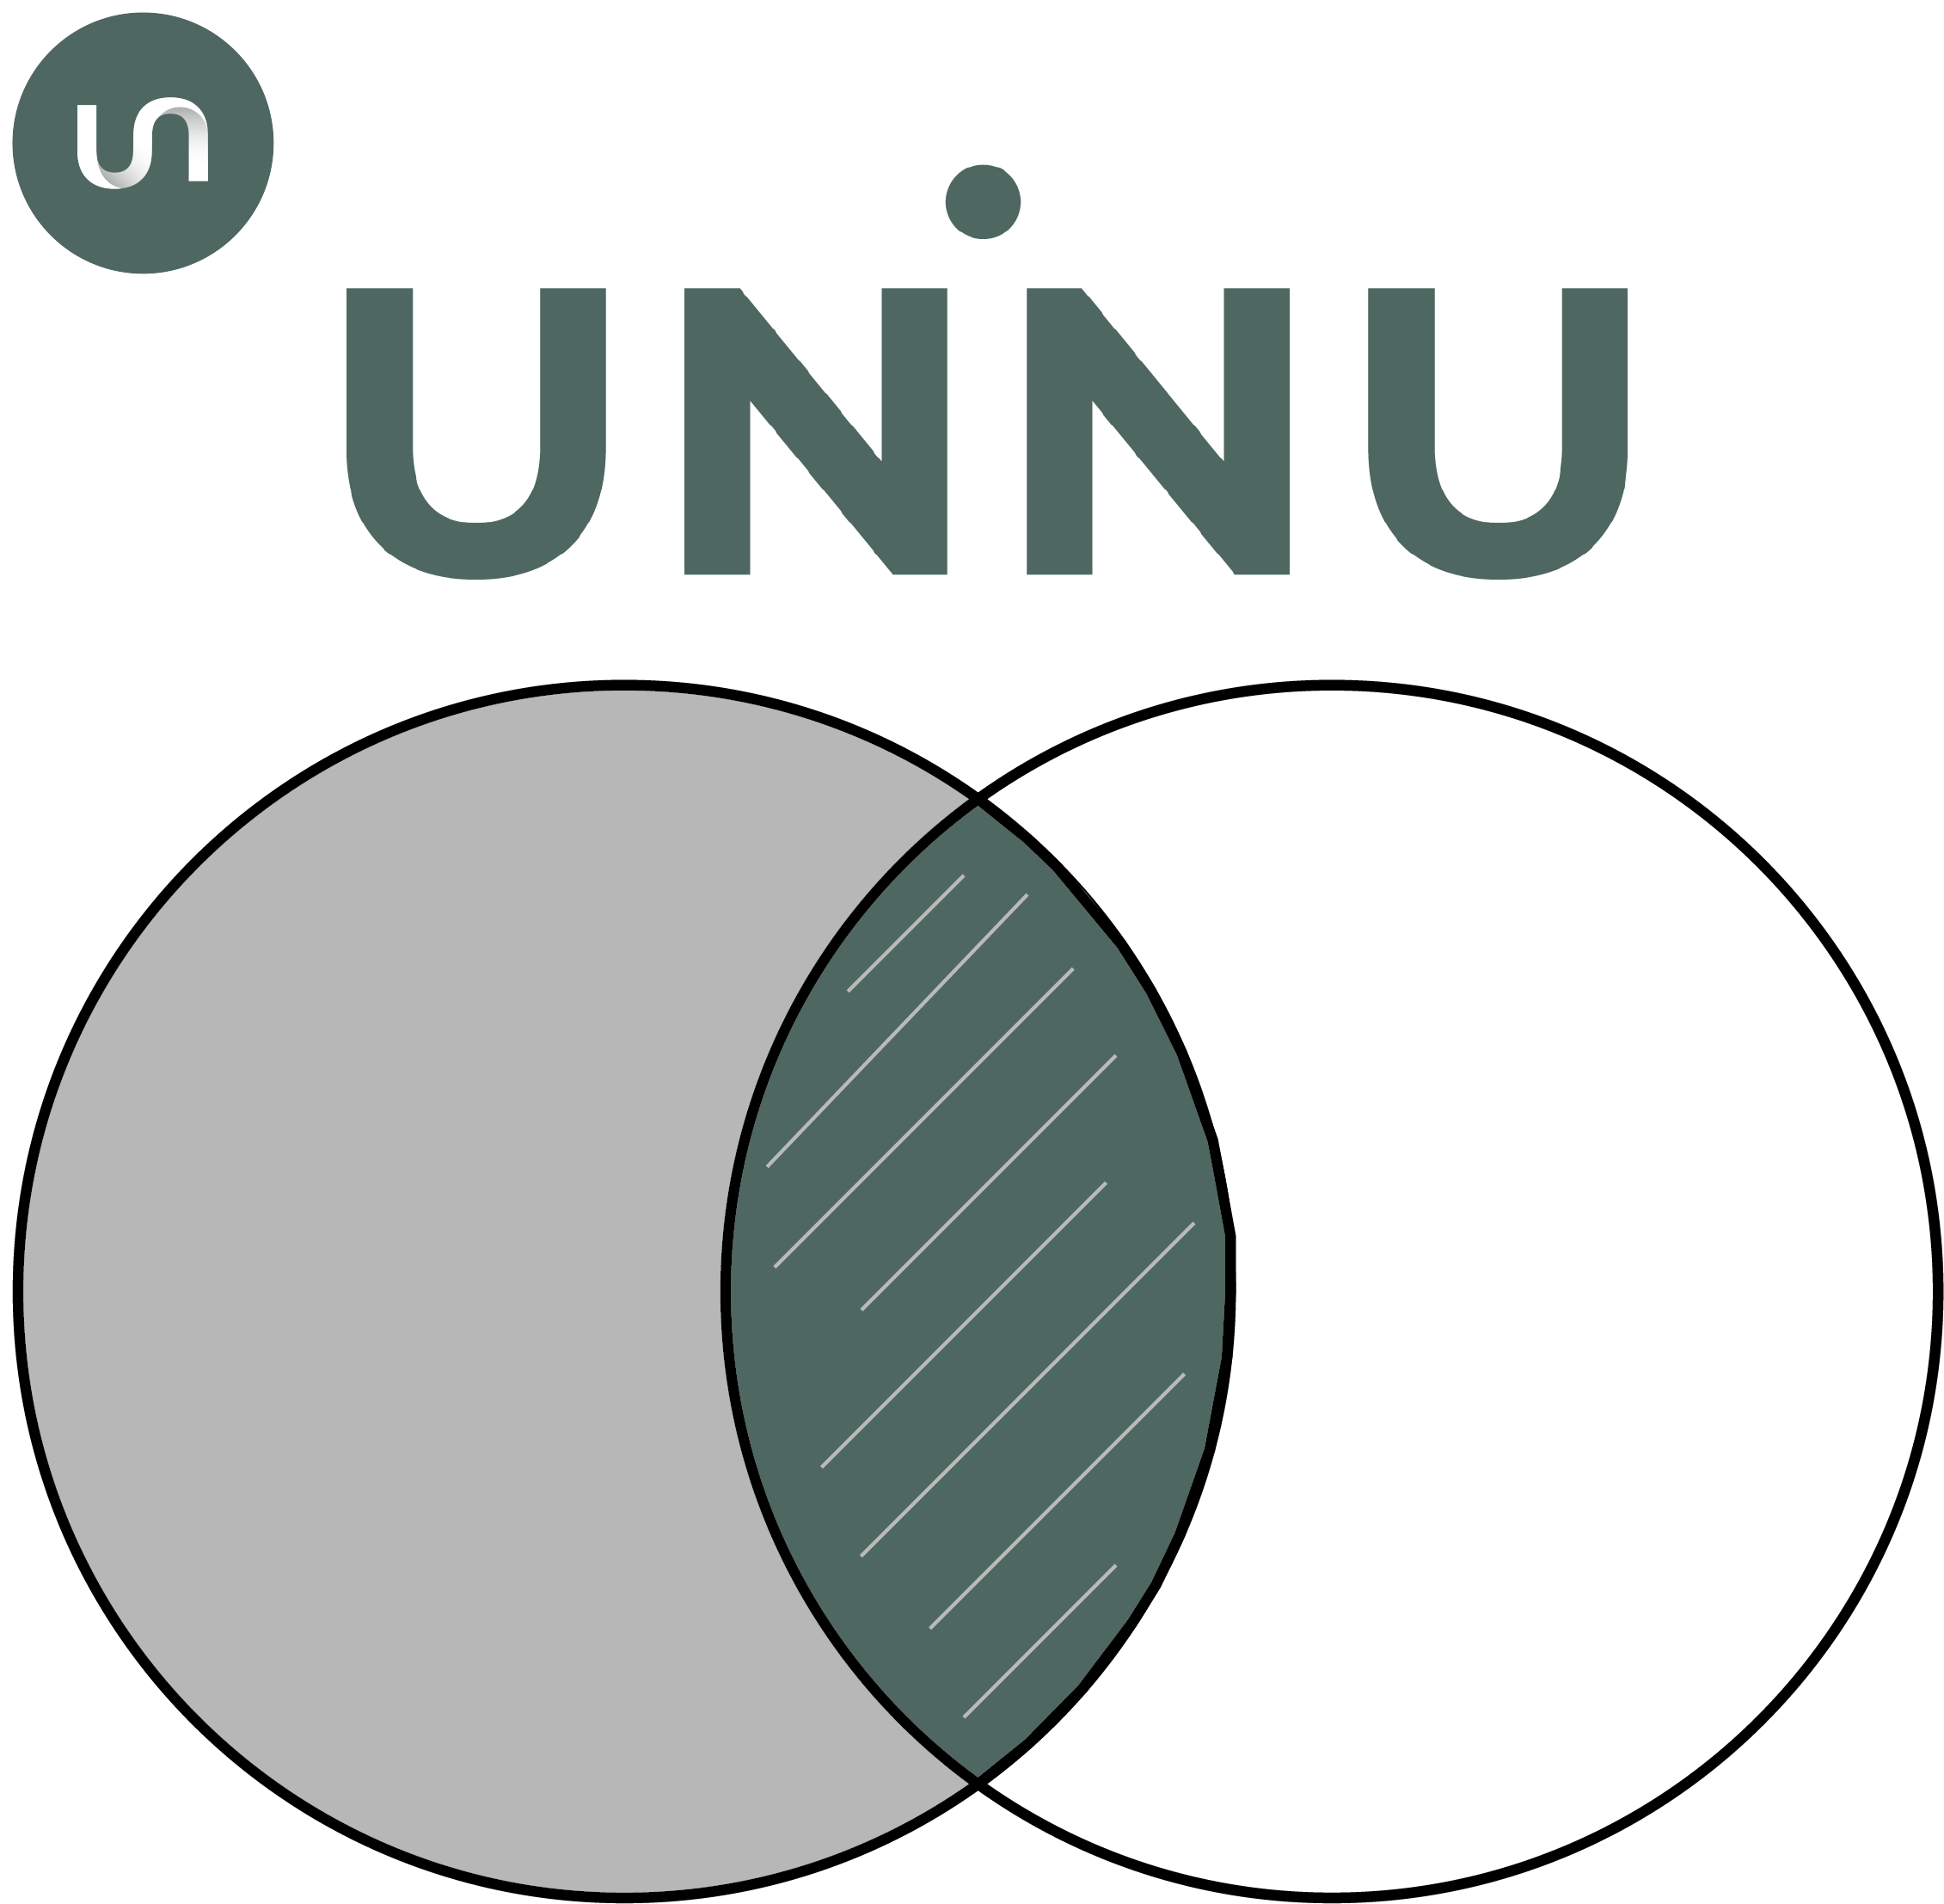 - The name UNINU Communications was inspired by the Union and Intersection concepts in a Venn diagram where two circles overlap - represented as ∪ and ∩.These symbols in the logo and icon are the inspiration for creating UNINU:Combining communication and science, bringing the scientist and audience together, and producing quality science communication.